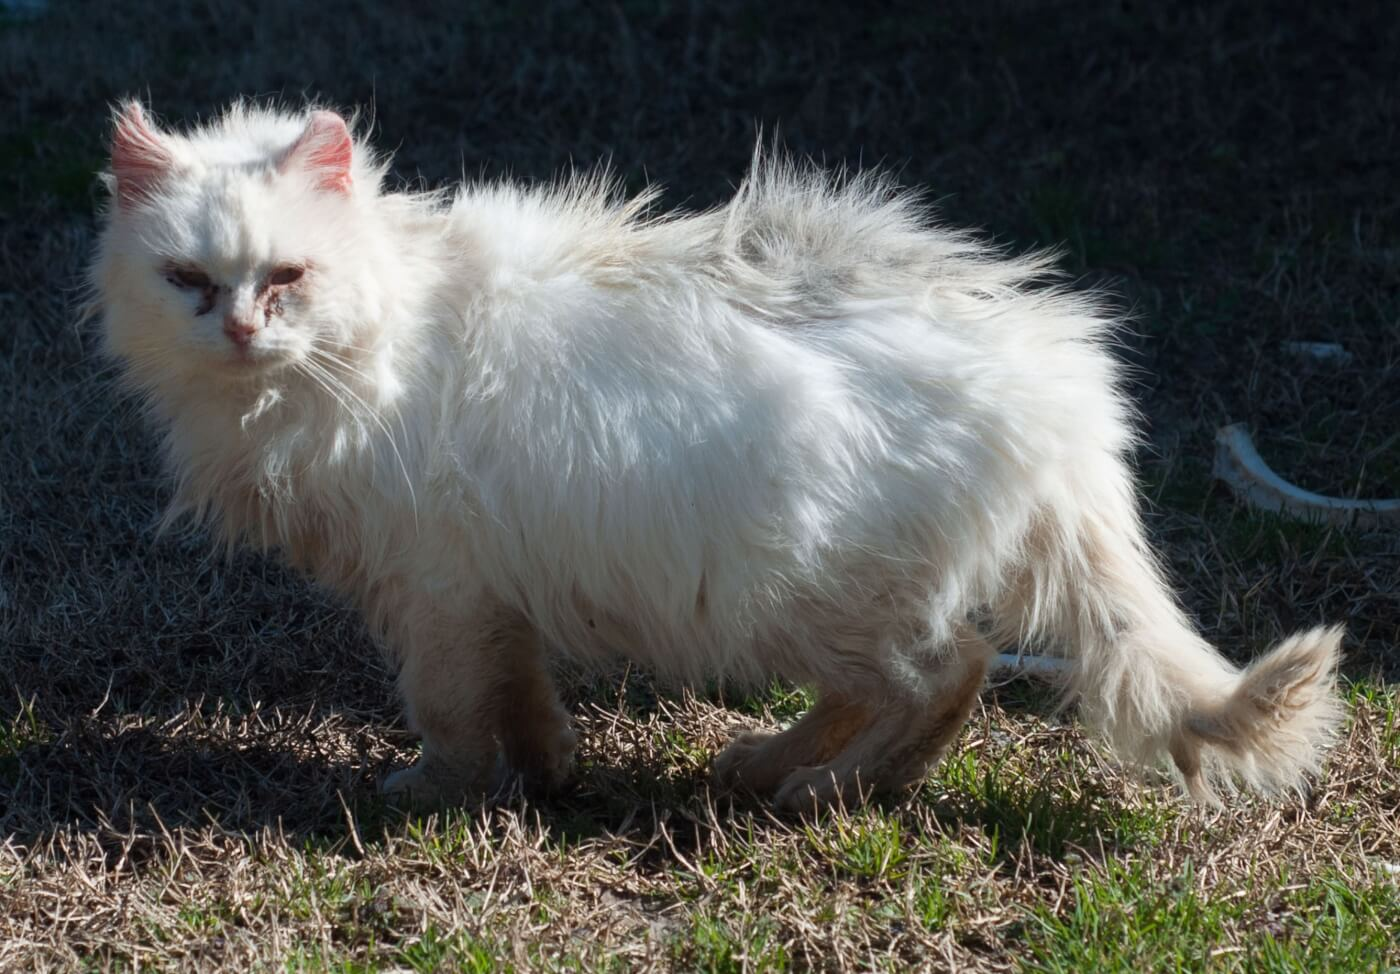 Animal Rights Uncompromised: Feral Cats